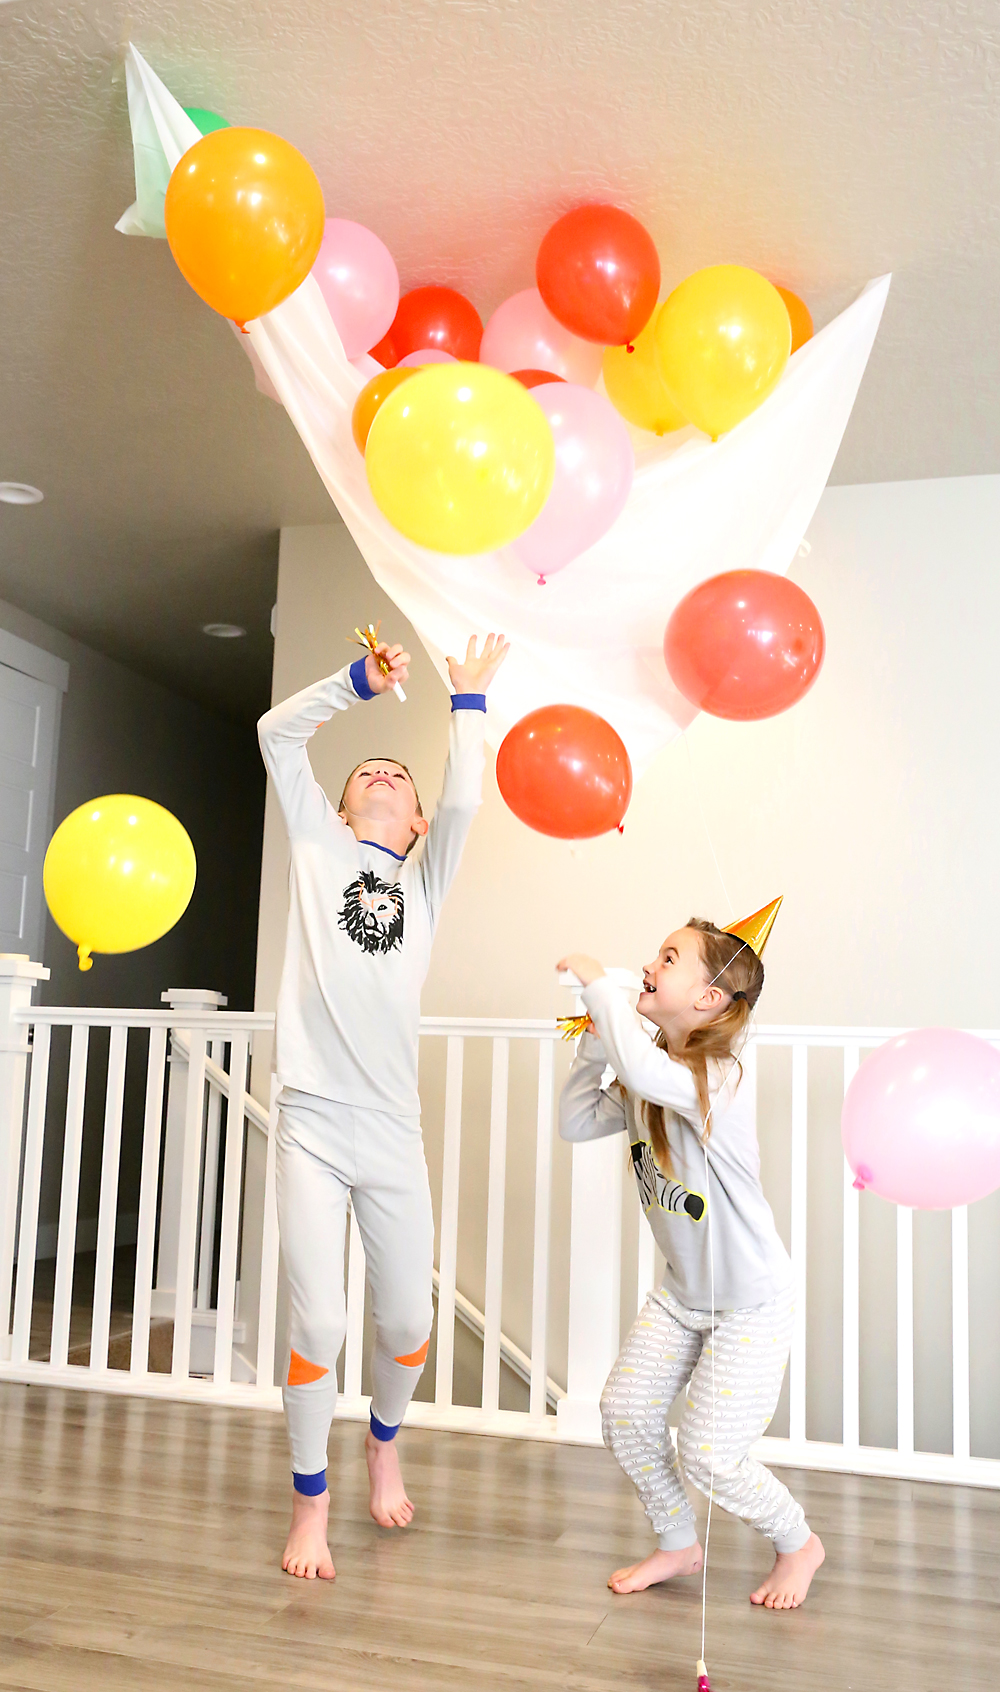 """So fun! Make an easy balloon drop for New Year's Eve with supplies from the dollar store - then drop it whenever you want it to be """"midnight""""! Great idea for New Year's Eve at home with kids."""